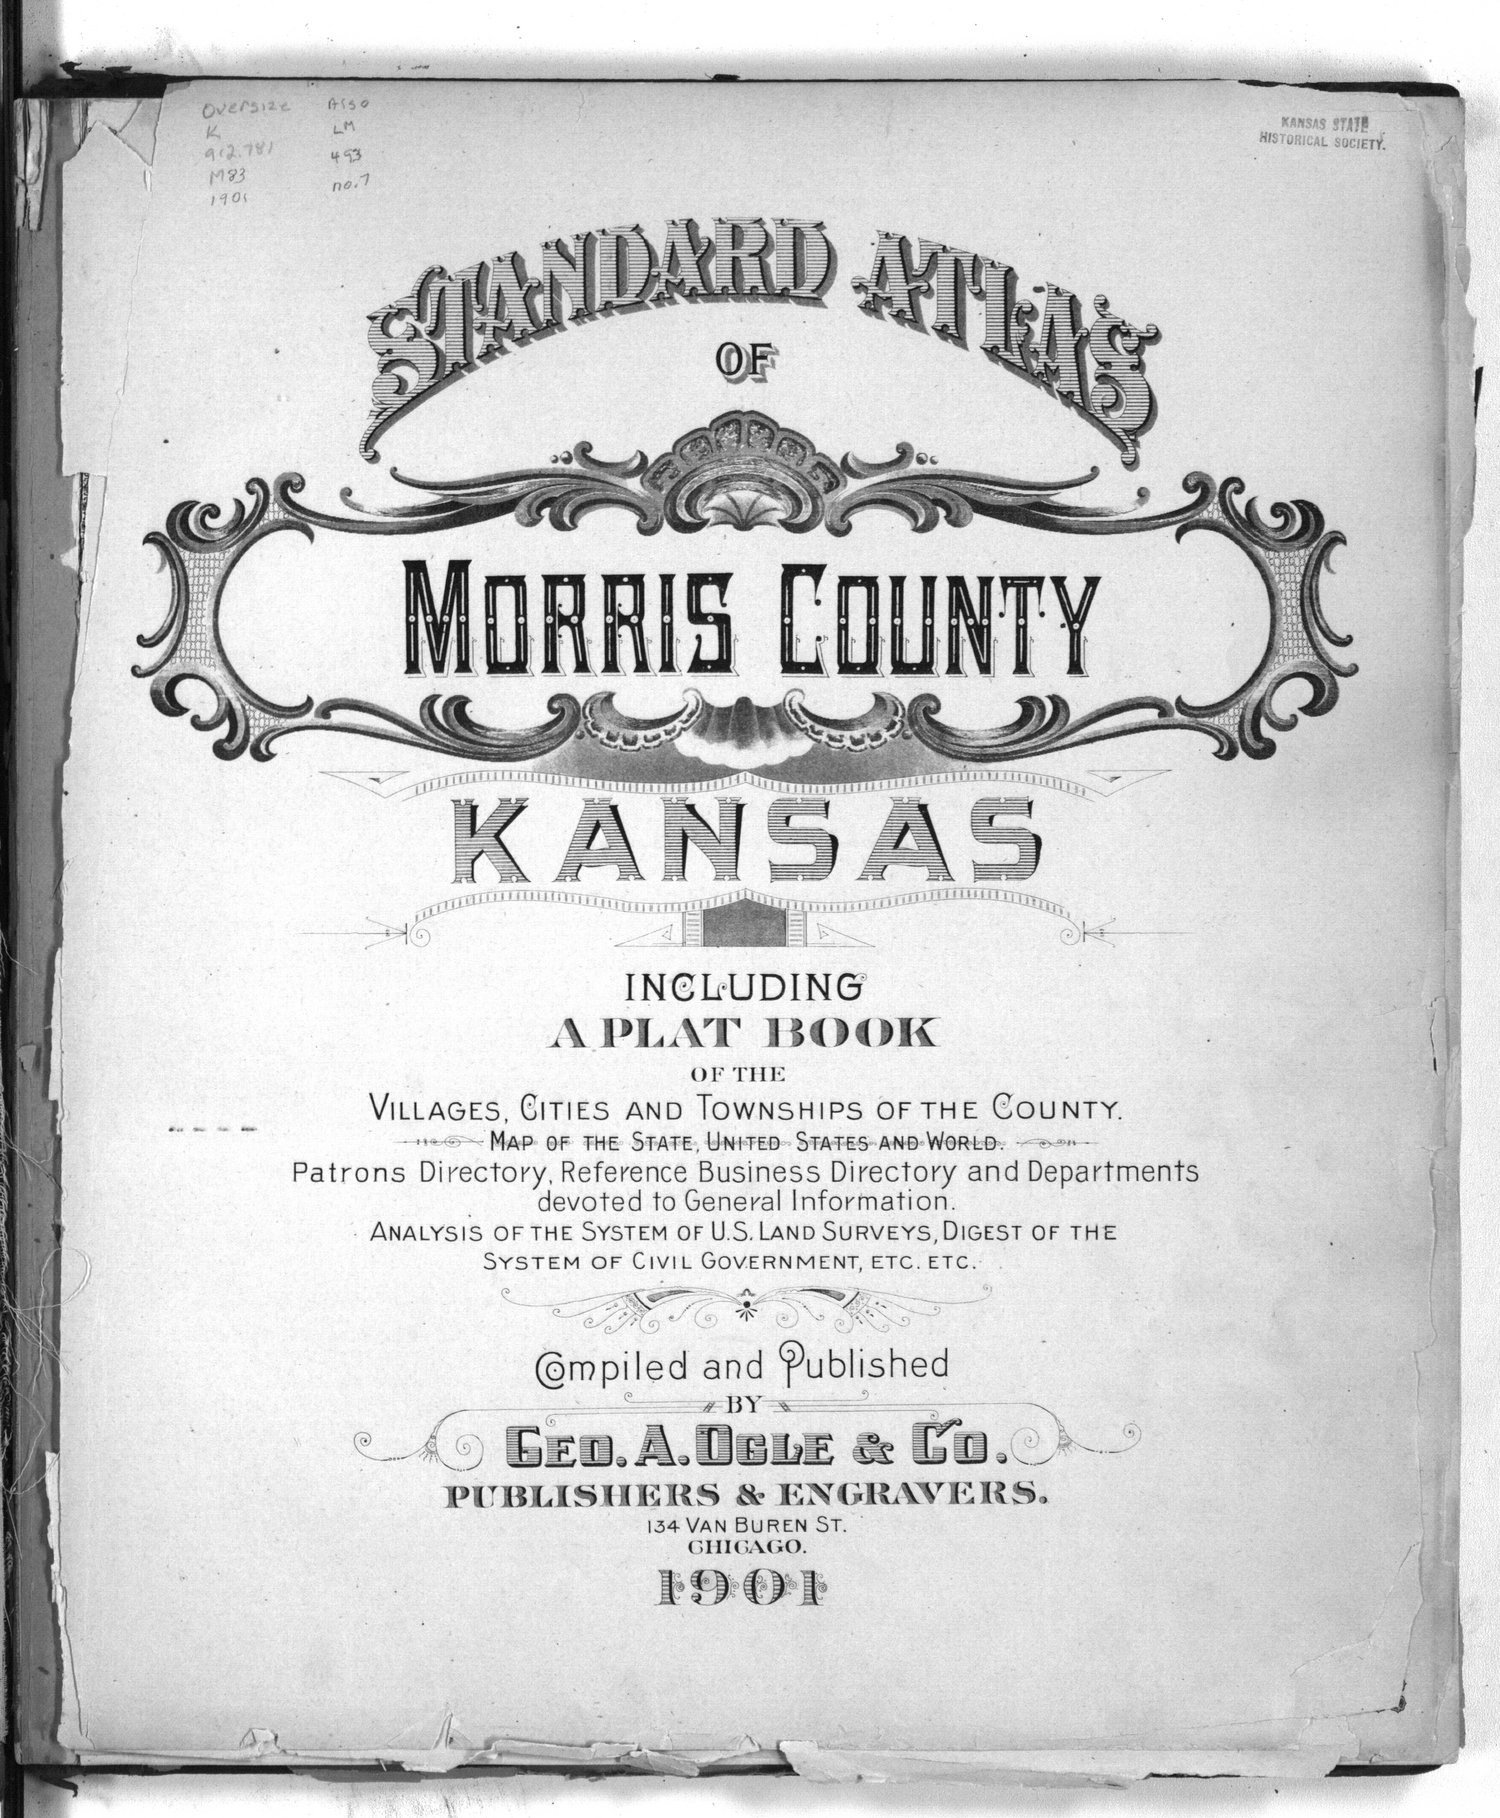 Standard atlas of Morris County, Kansas - Title Page